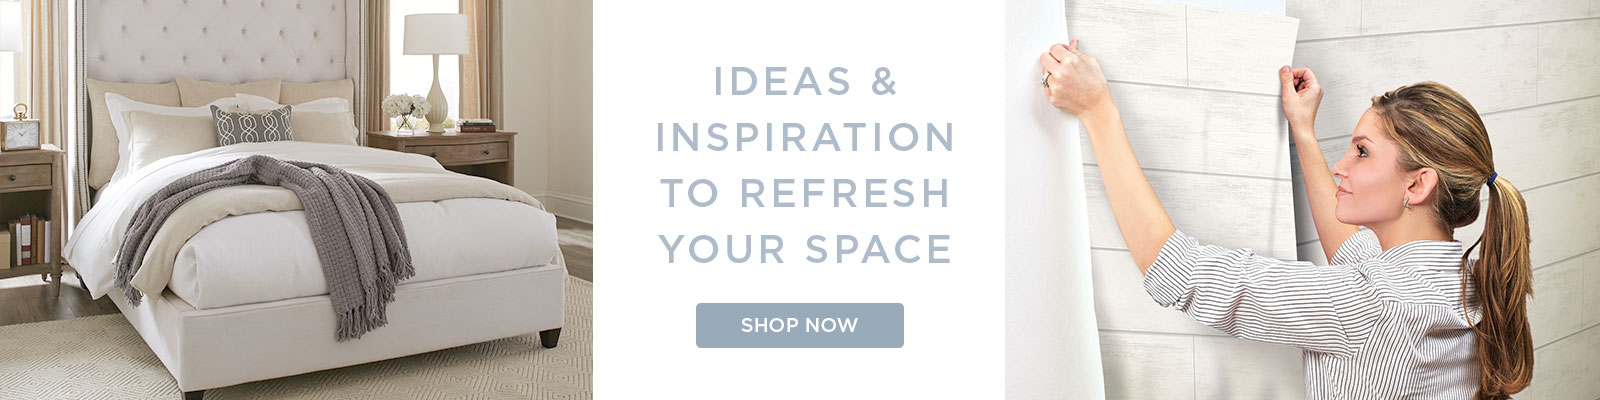 Refresh Your Space & Shop Room Update Ideas